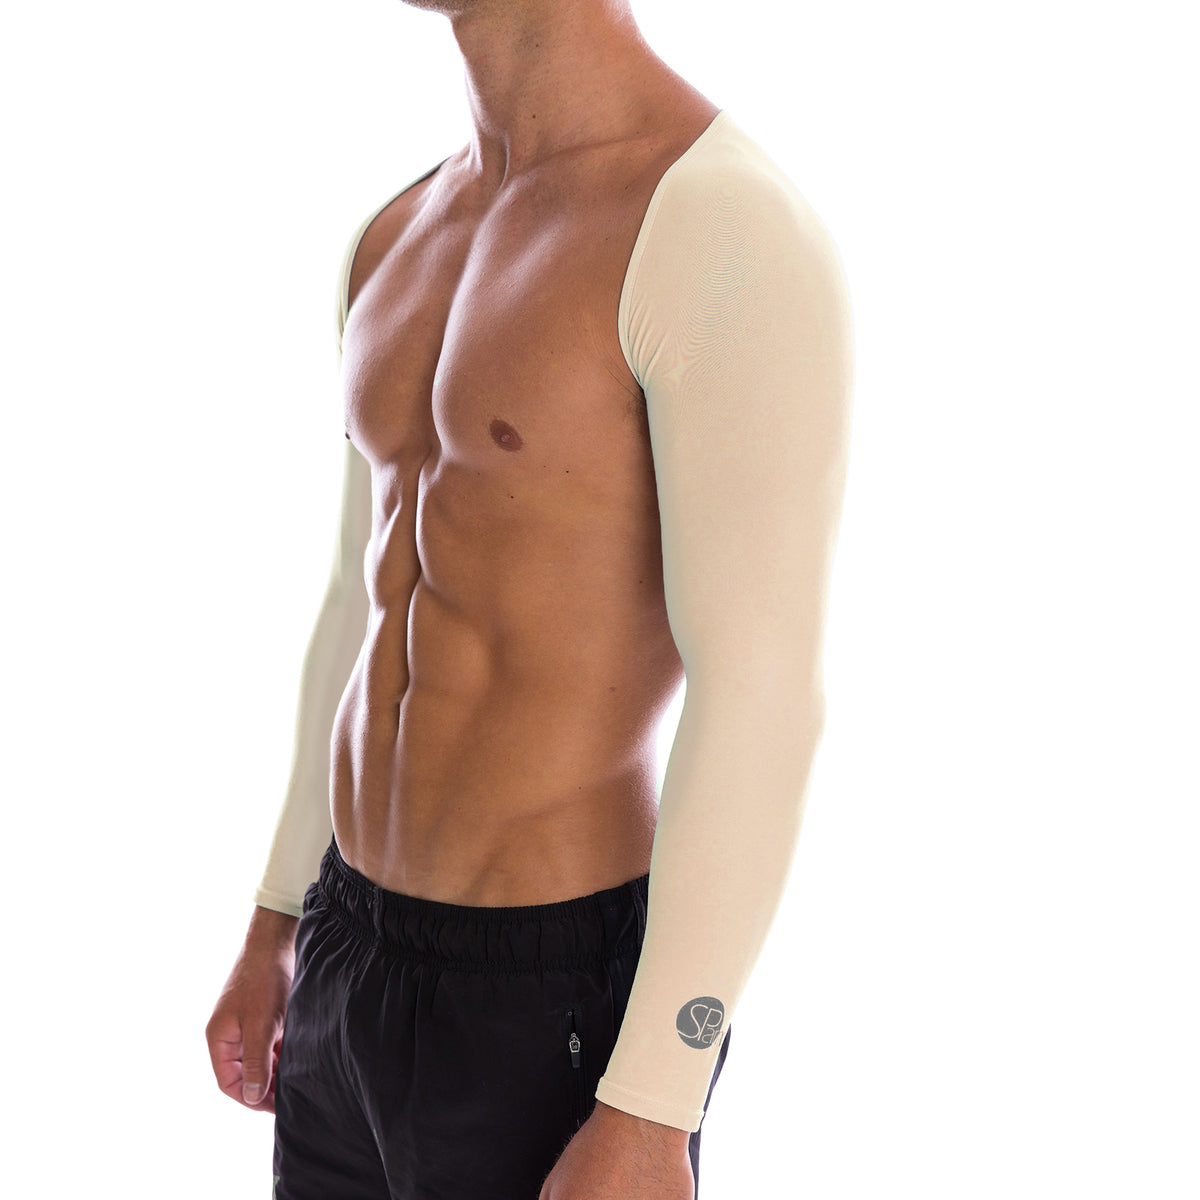 Sun Protection Shoulder Wrap (UV Sleeves) - SParms America